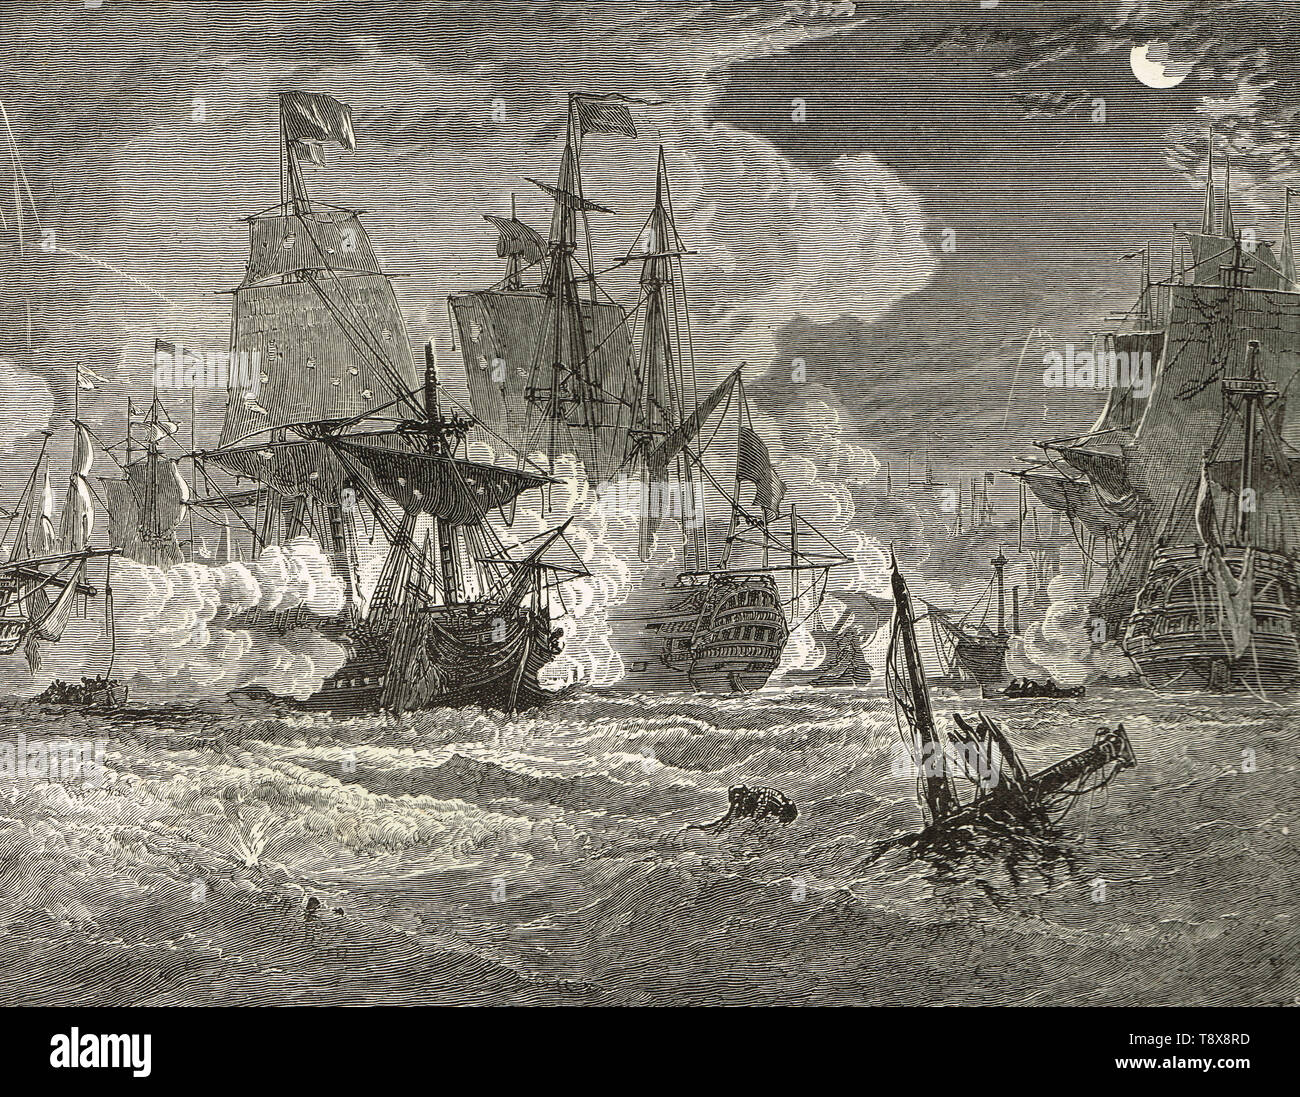 The Battle of Negapatam, 3 August 1758, an indecisive battle between a British squadron under Vice-Admiral George Pocock and French squadron under Comte d'Aché in Pondicherry roads off the Carnatic coast of India near Nagapatam during the Seven Years' War. - Stock Image